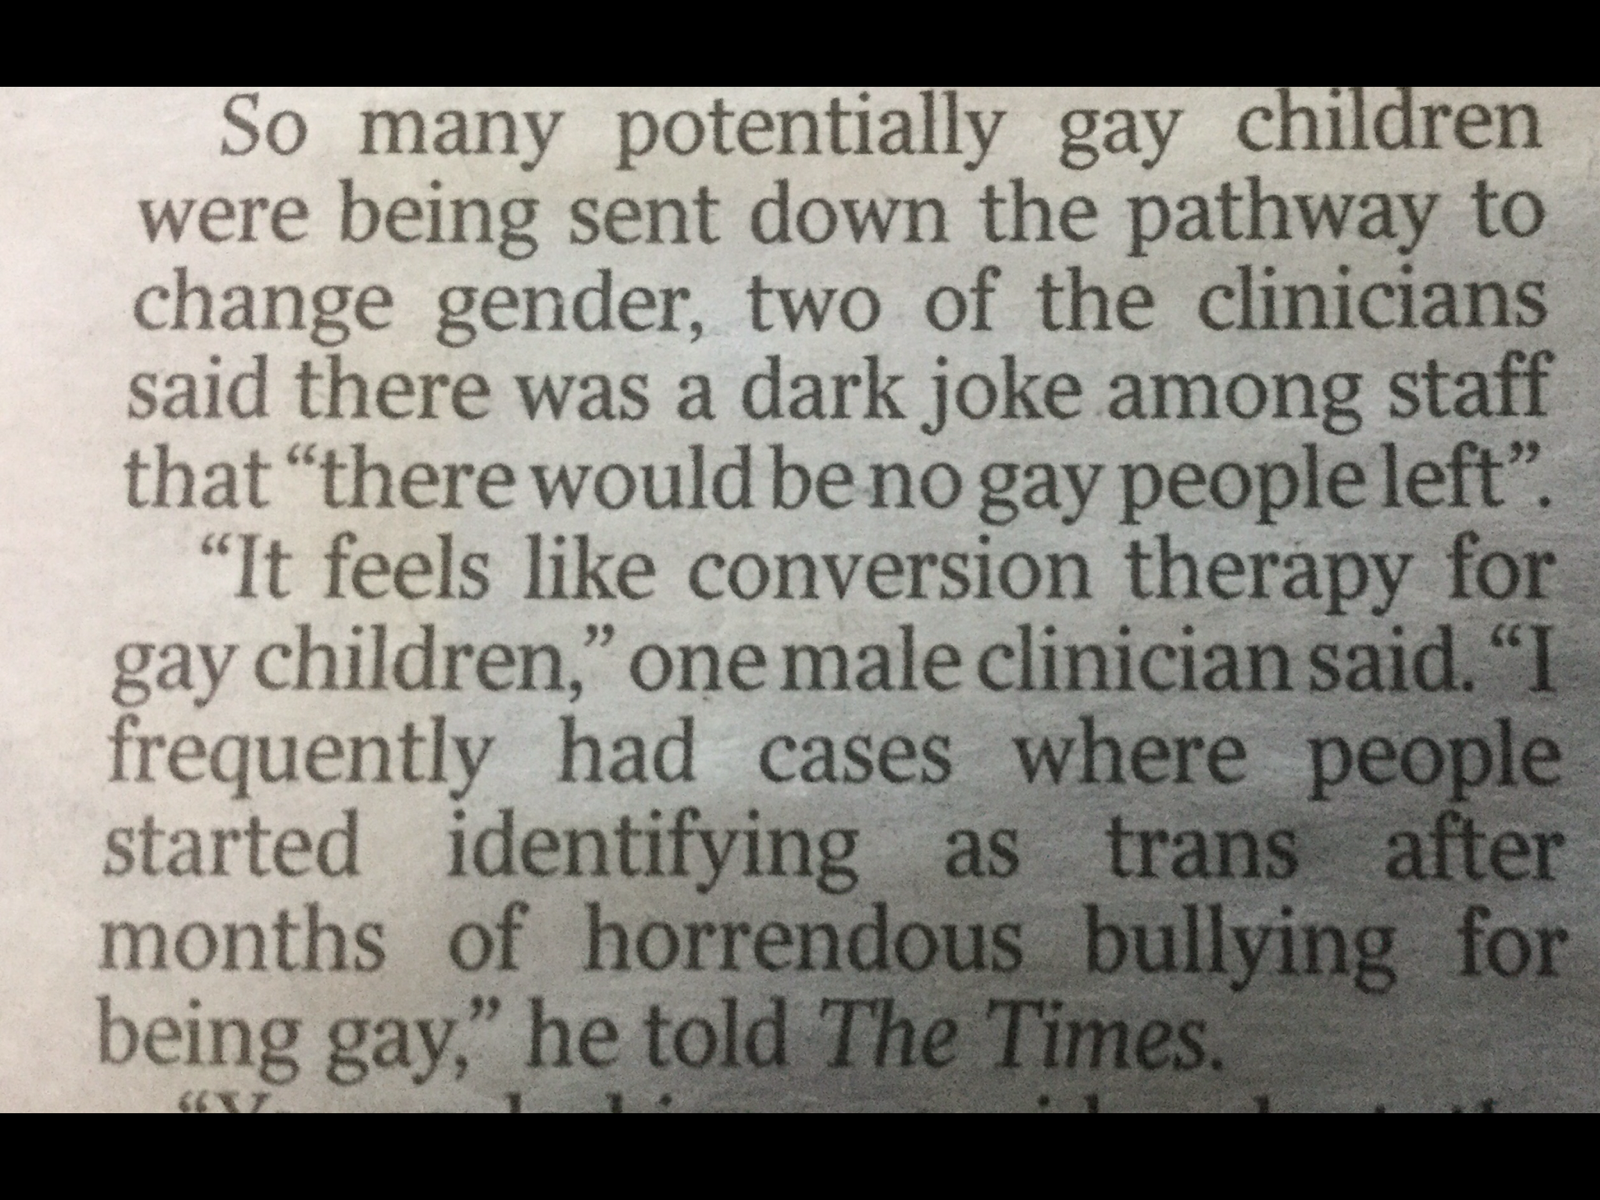 gay children and GIDS times article